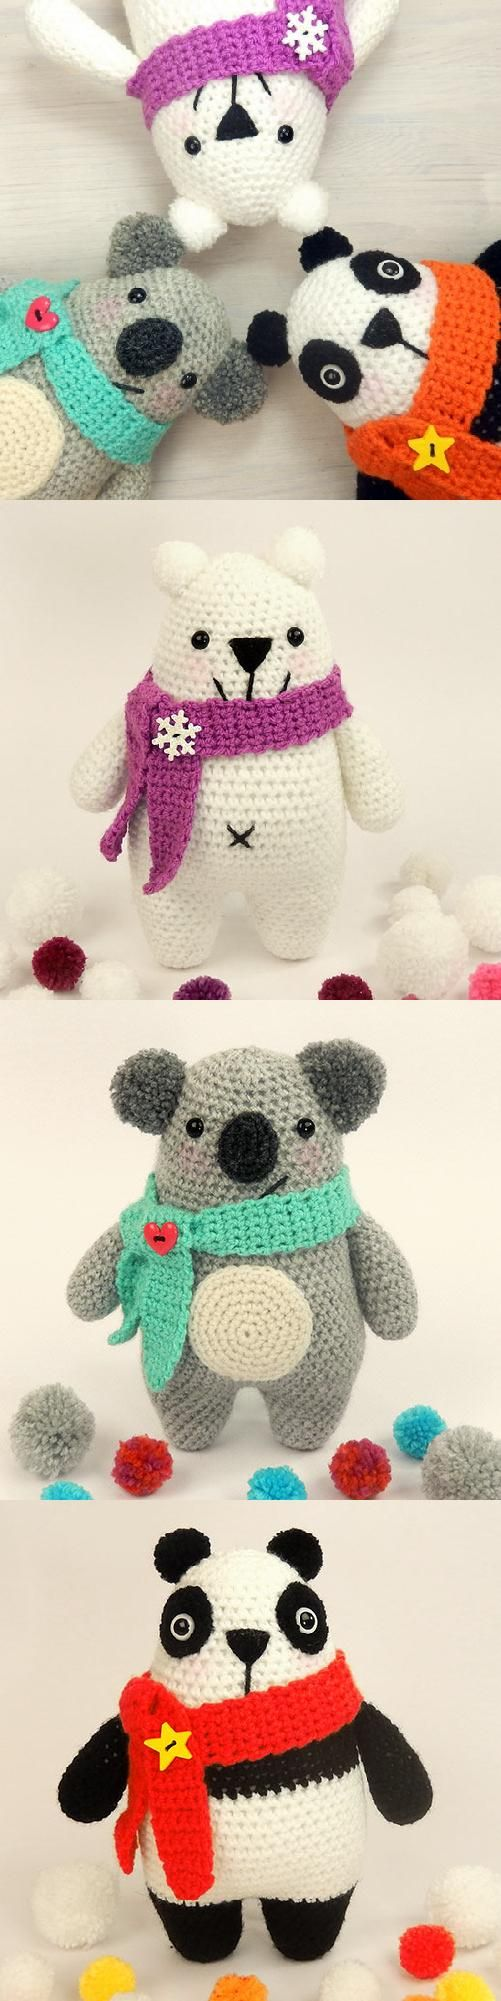 Ning Ning, Norris and Nook amigurumi pattern by Janine Holmes at ...